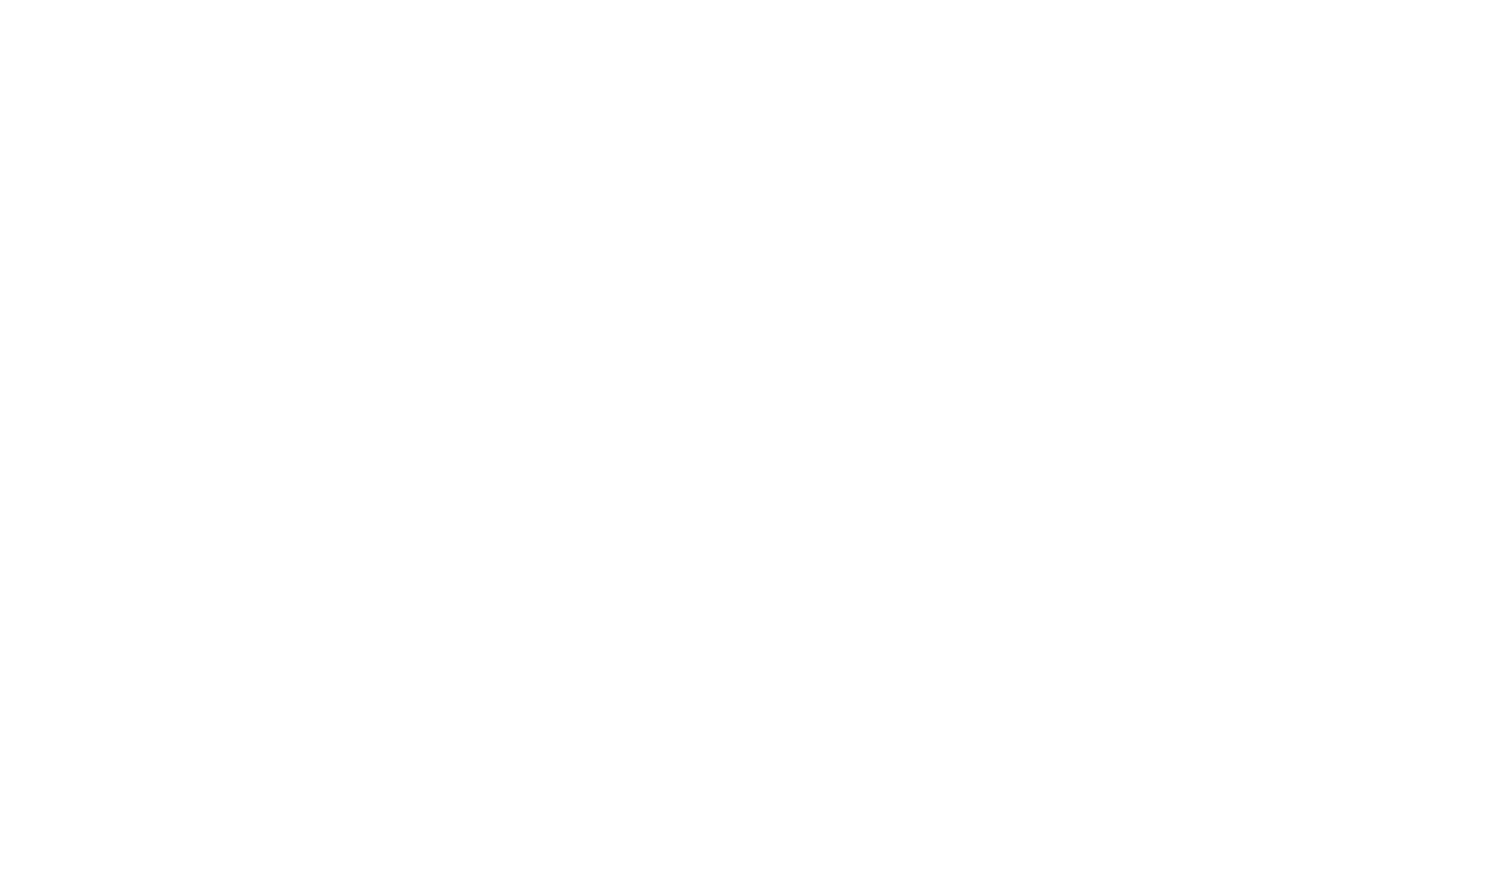 Crescent Choirs